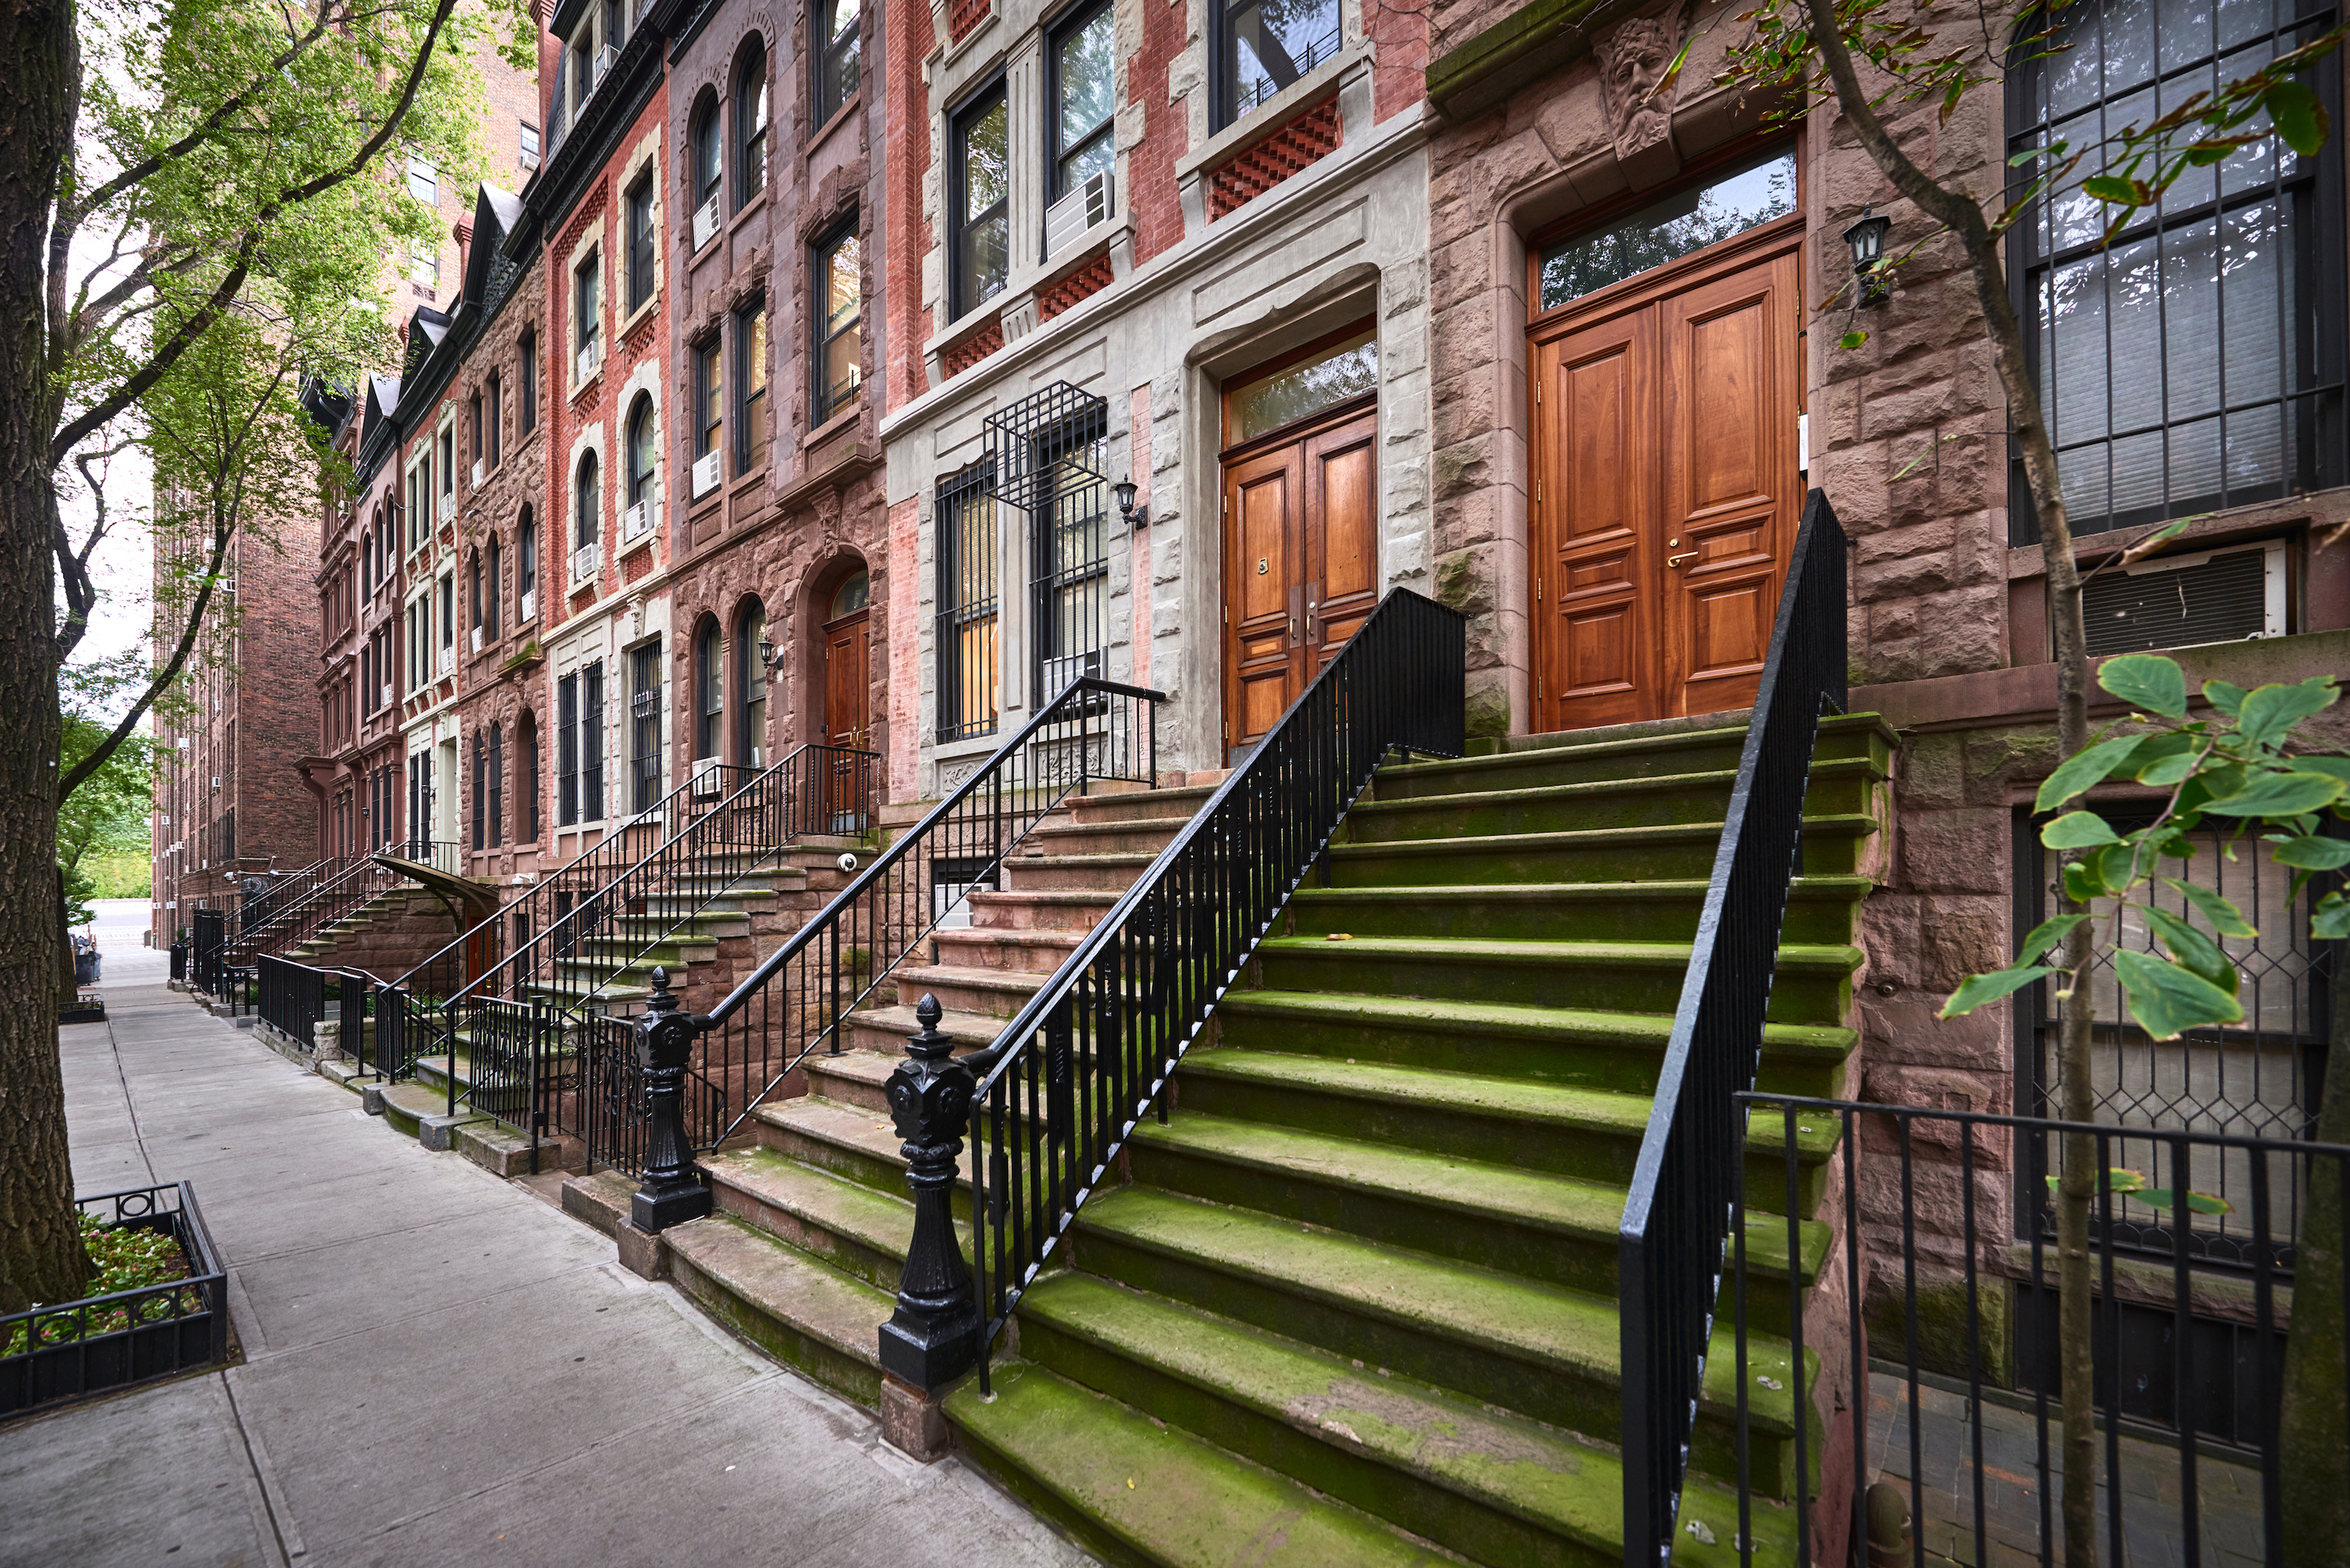 How close is NYC to instituting a rent freeze?